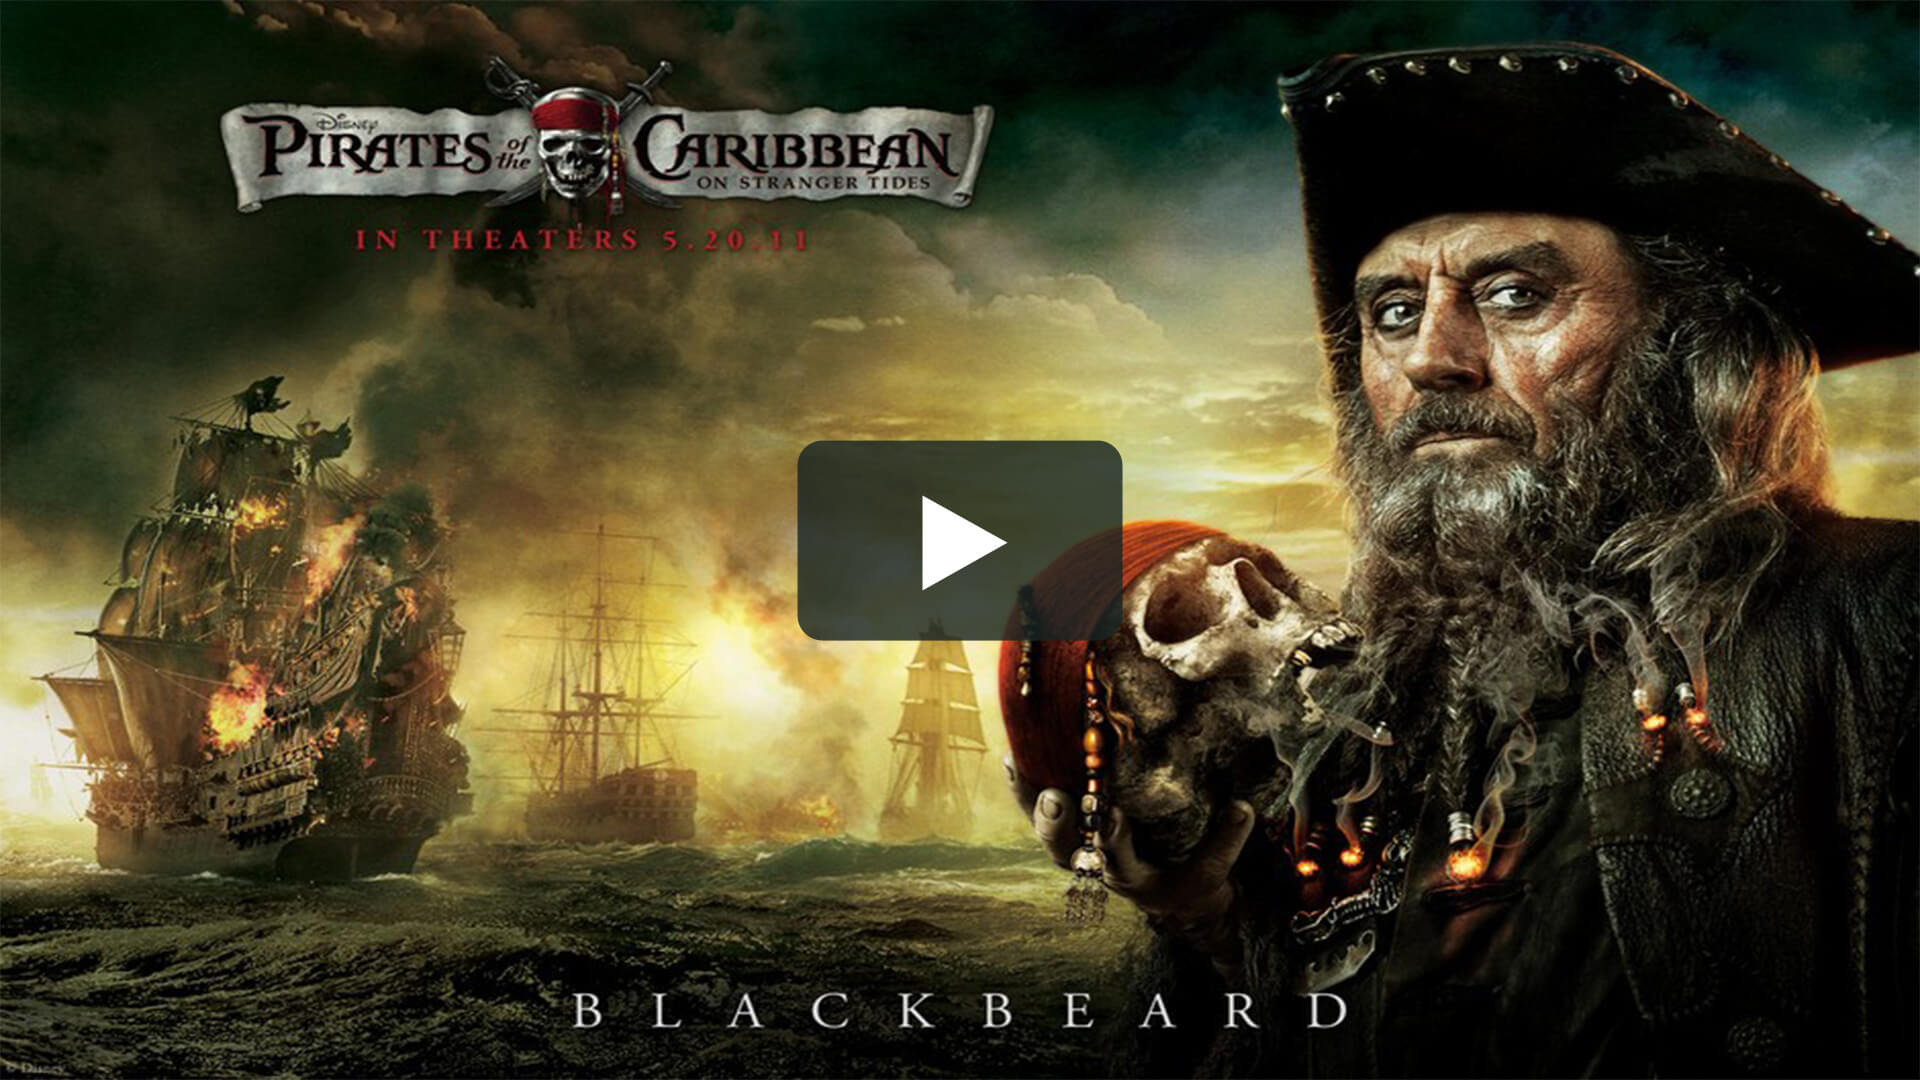 Pirates of the Caribbean: On Stranger Tides - 加勒比海盜:驚濤怪浪4